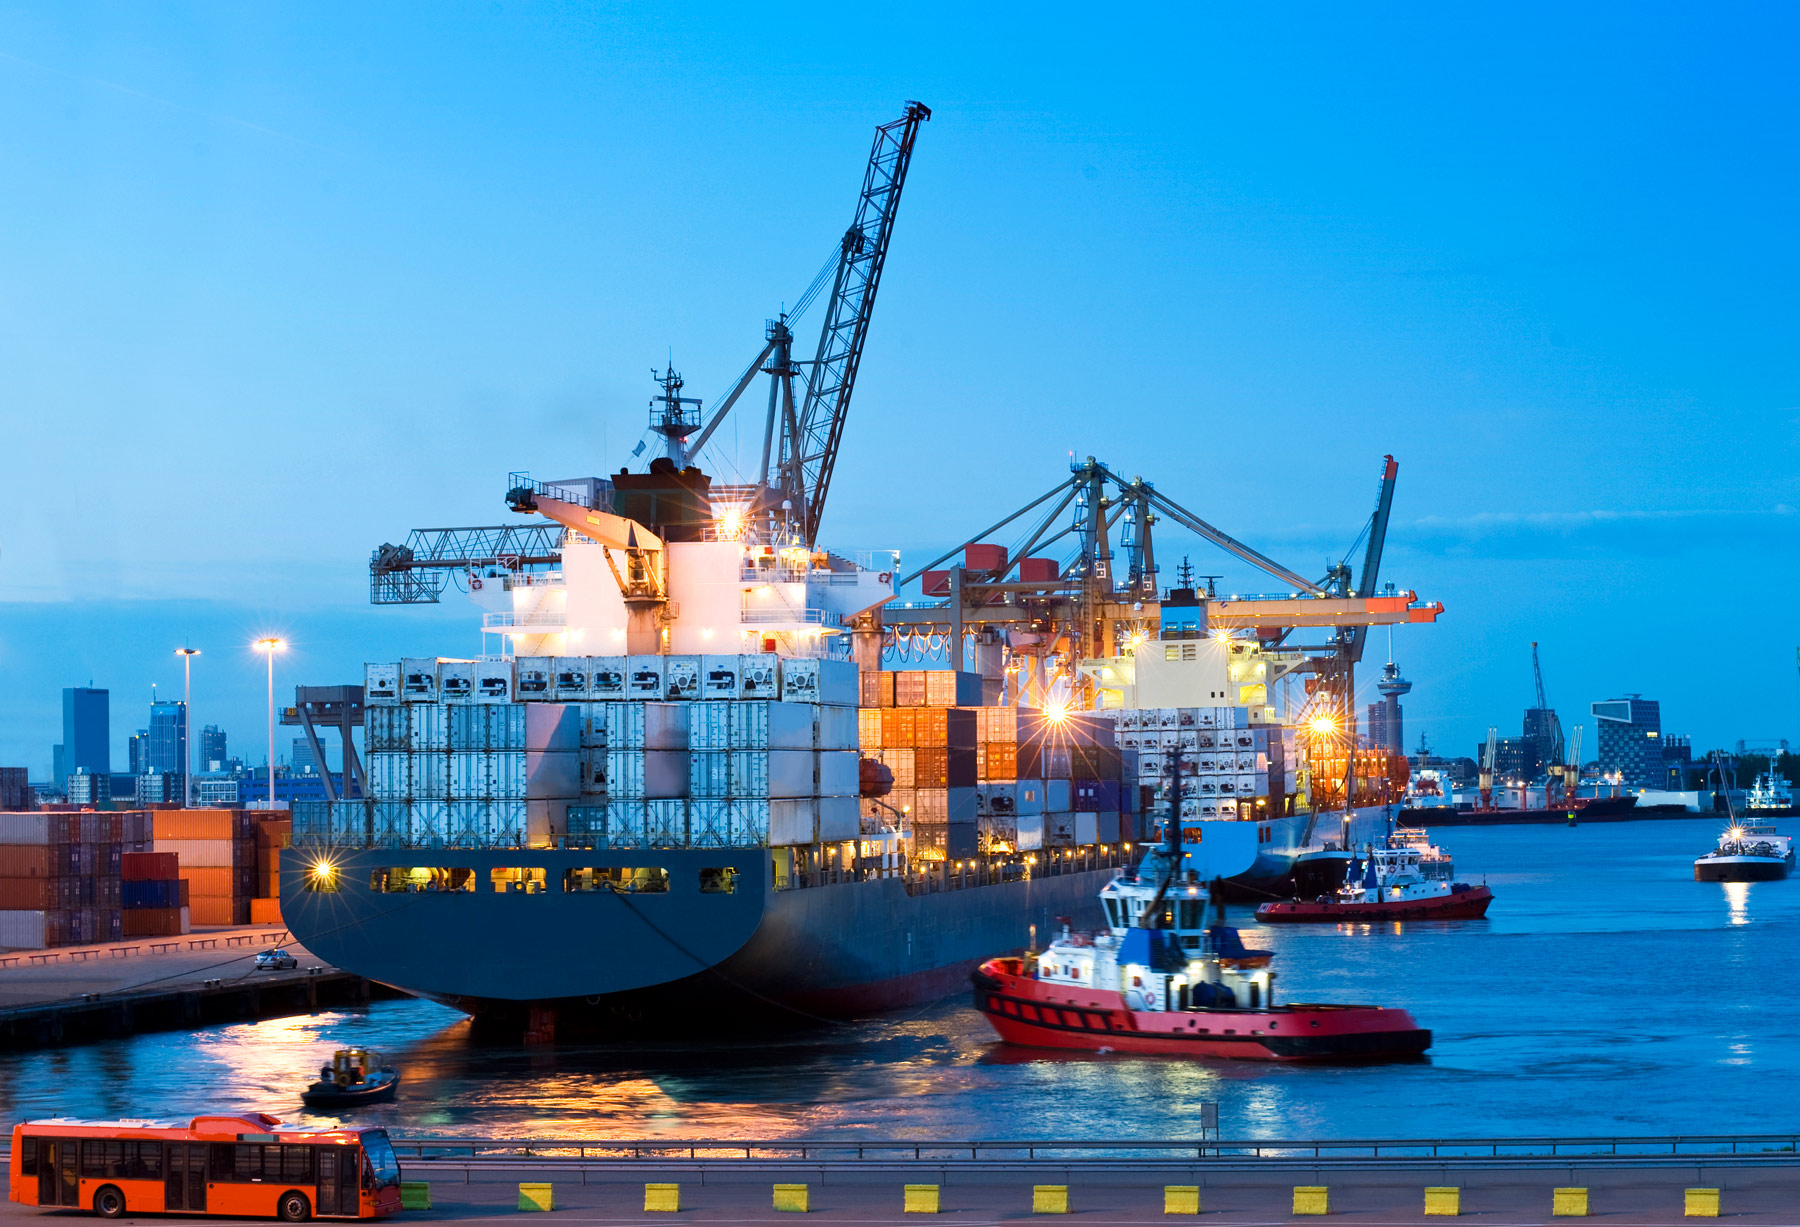 Tomsetts pallet distribution offer worldwide sea freight services and pallet shipping.